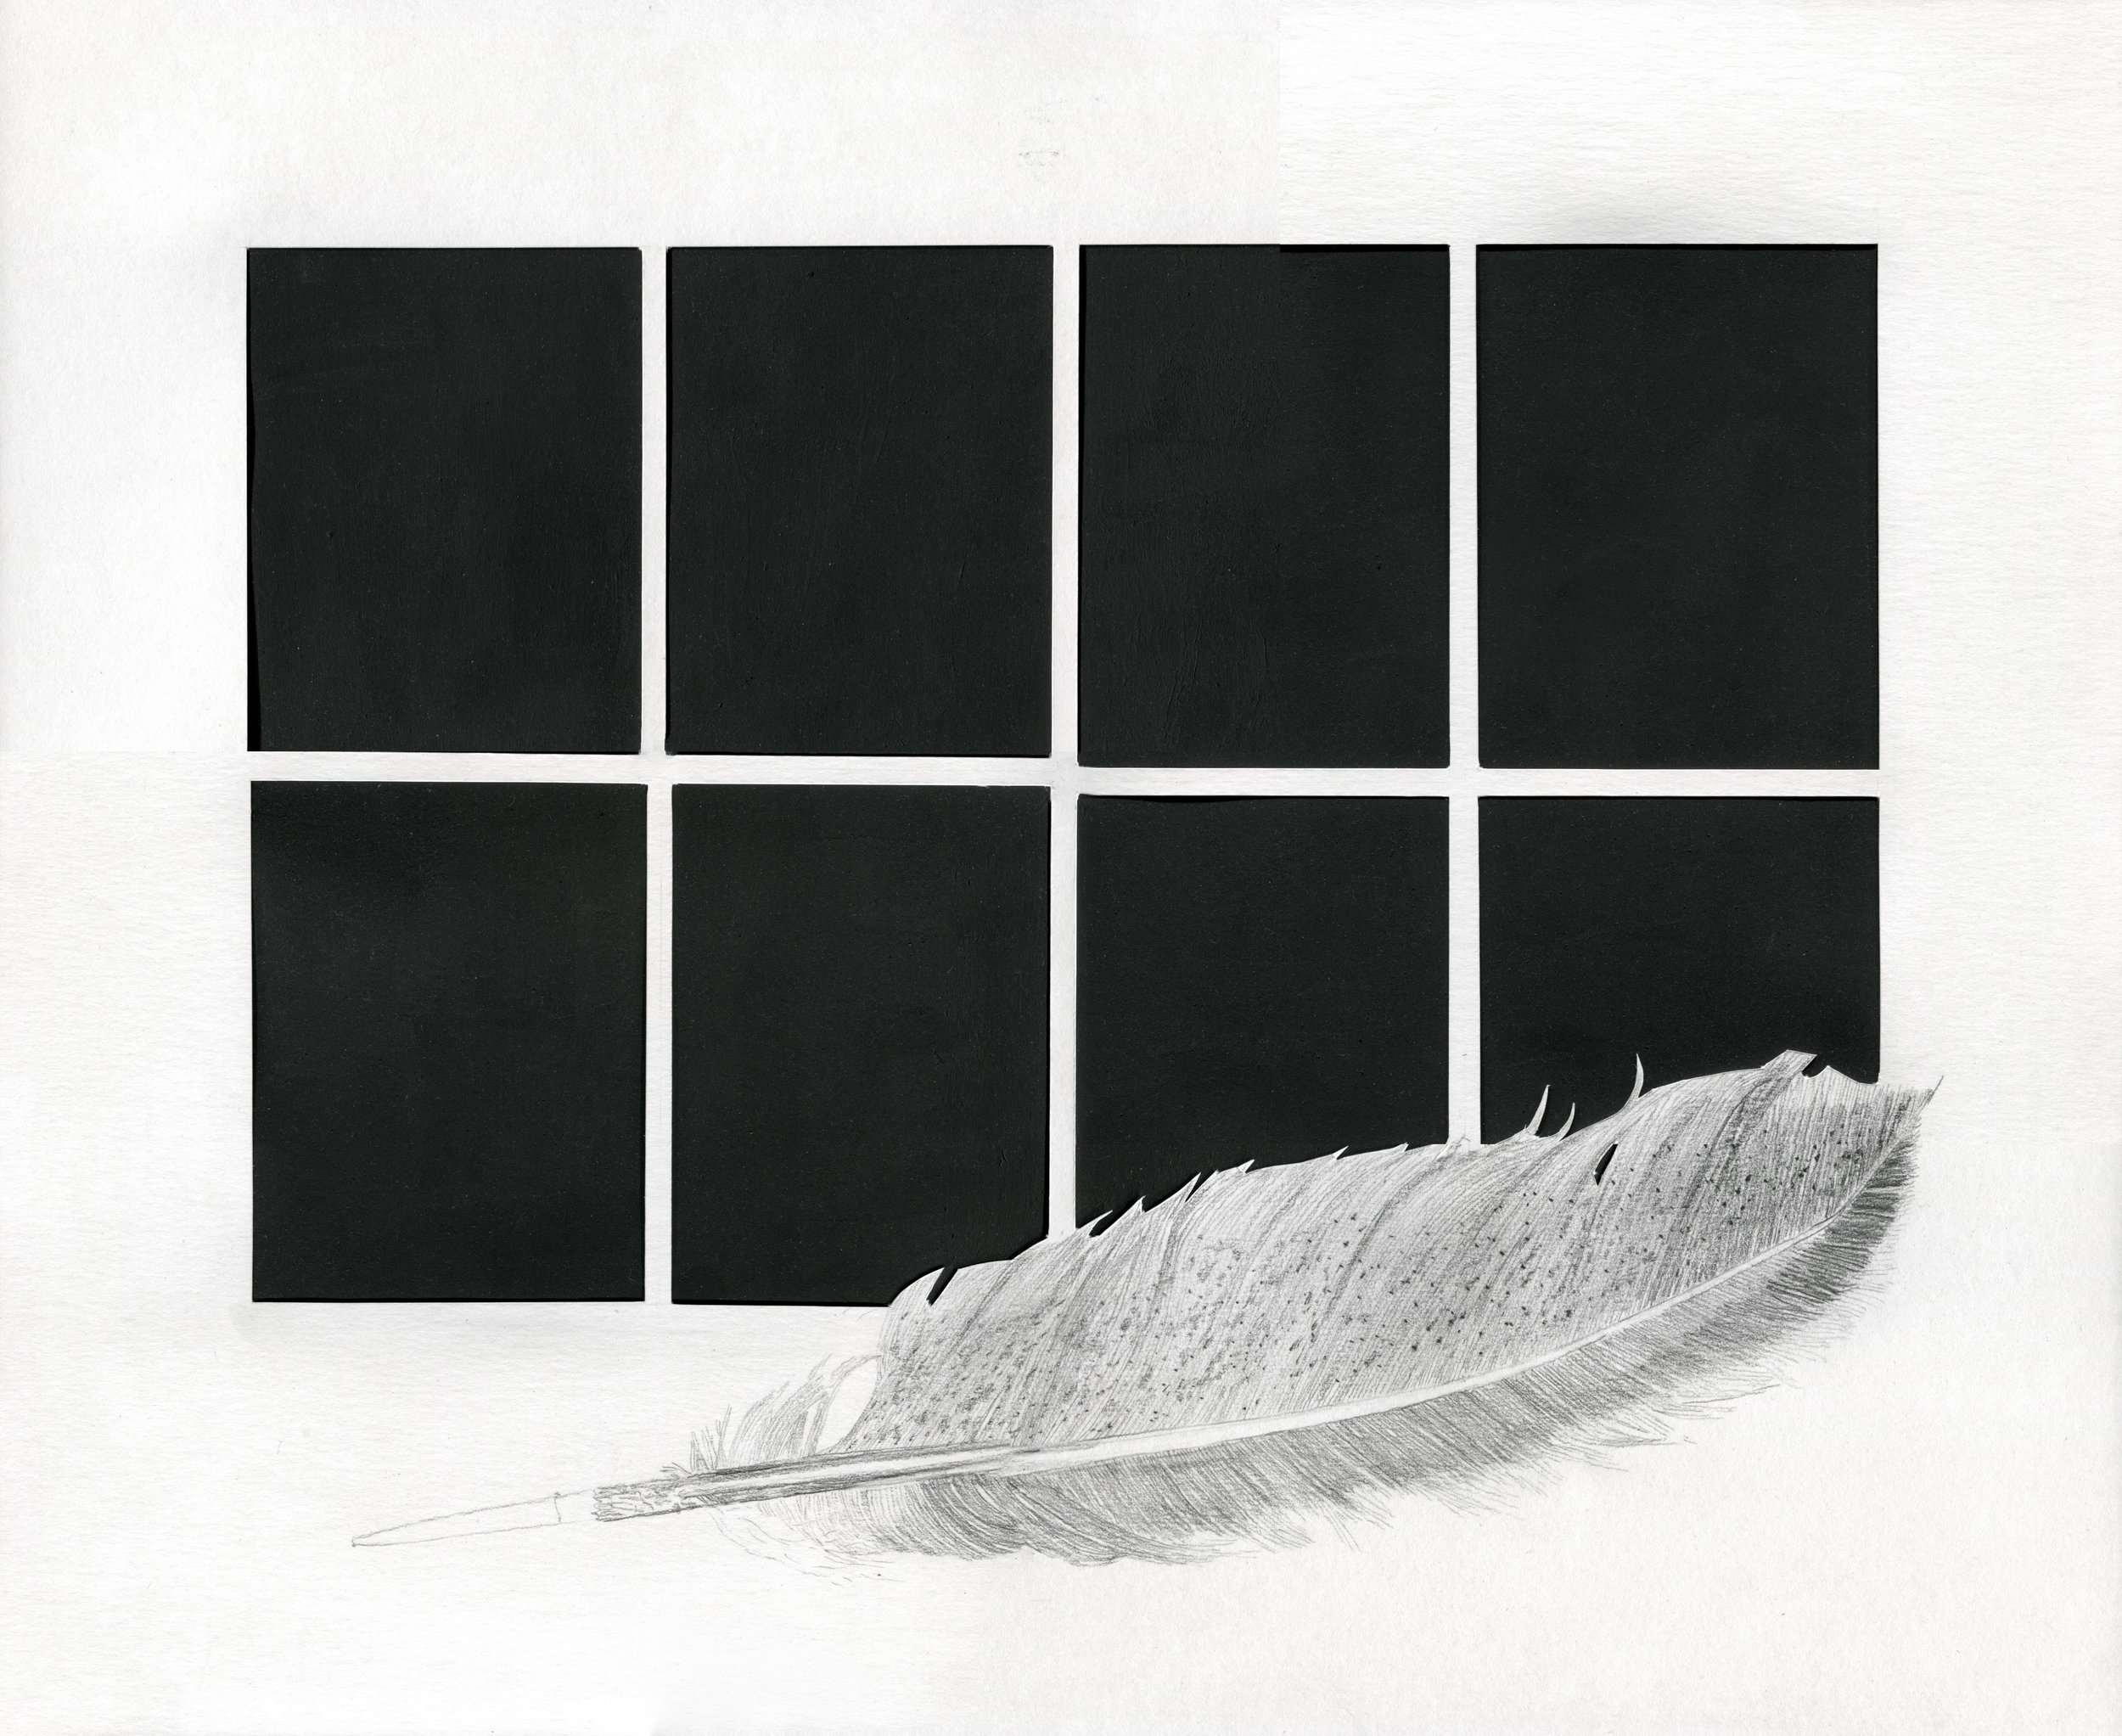 """Small Things Praying for You at Midnight (Feather)""  Clara McClenon. Charcoal and black gesso on cut paper. 17"" x 14"", 2018."